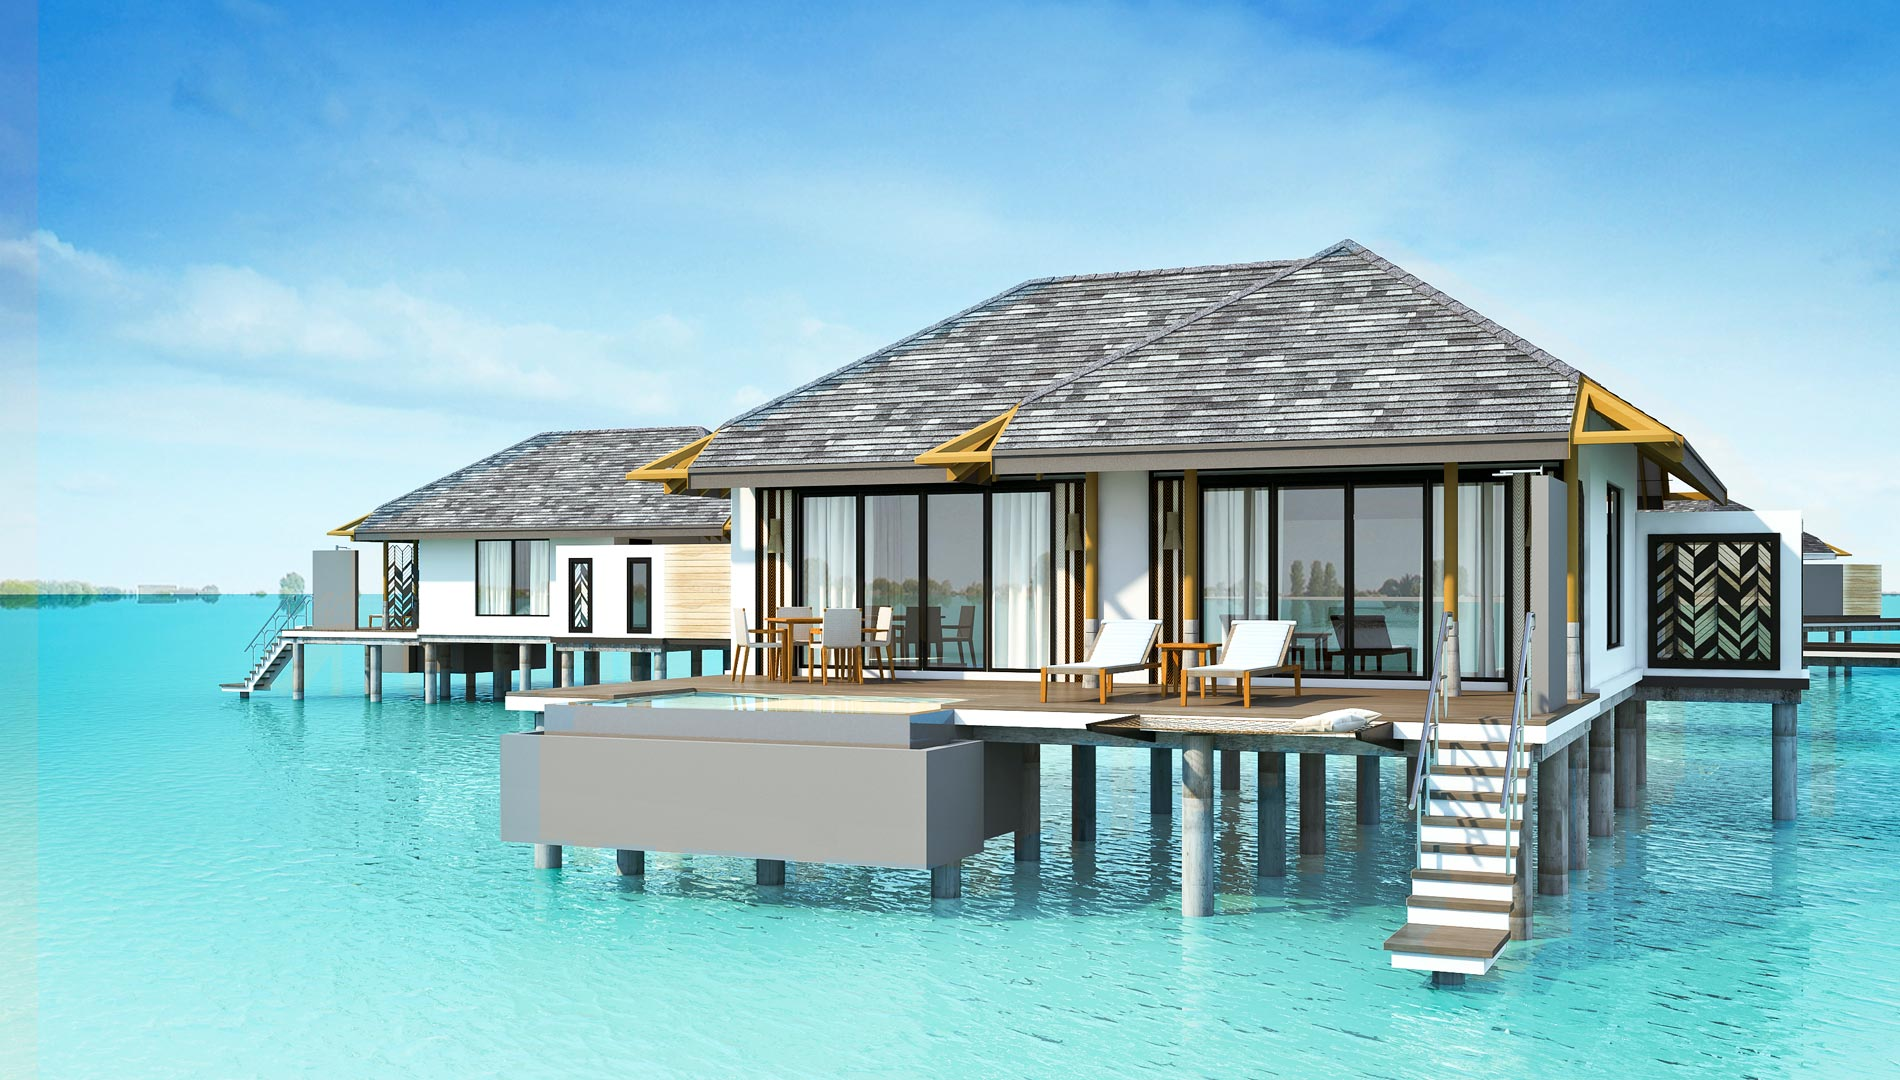 Amari havodda now open for stays from early 2016 for Villas with pools